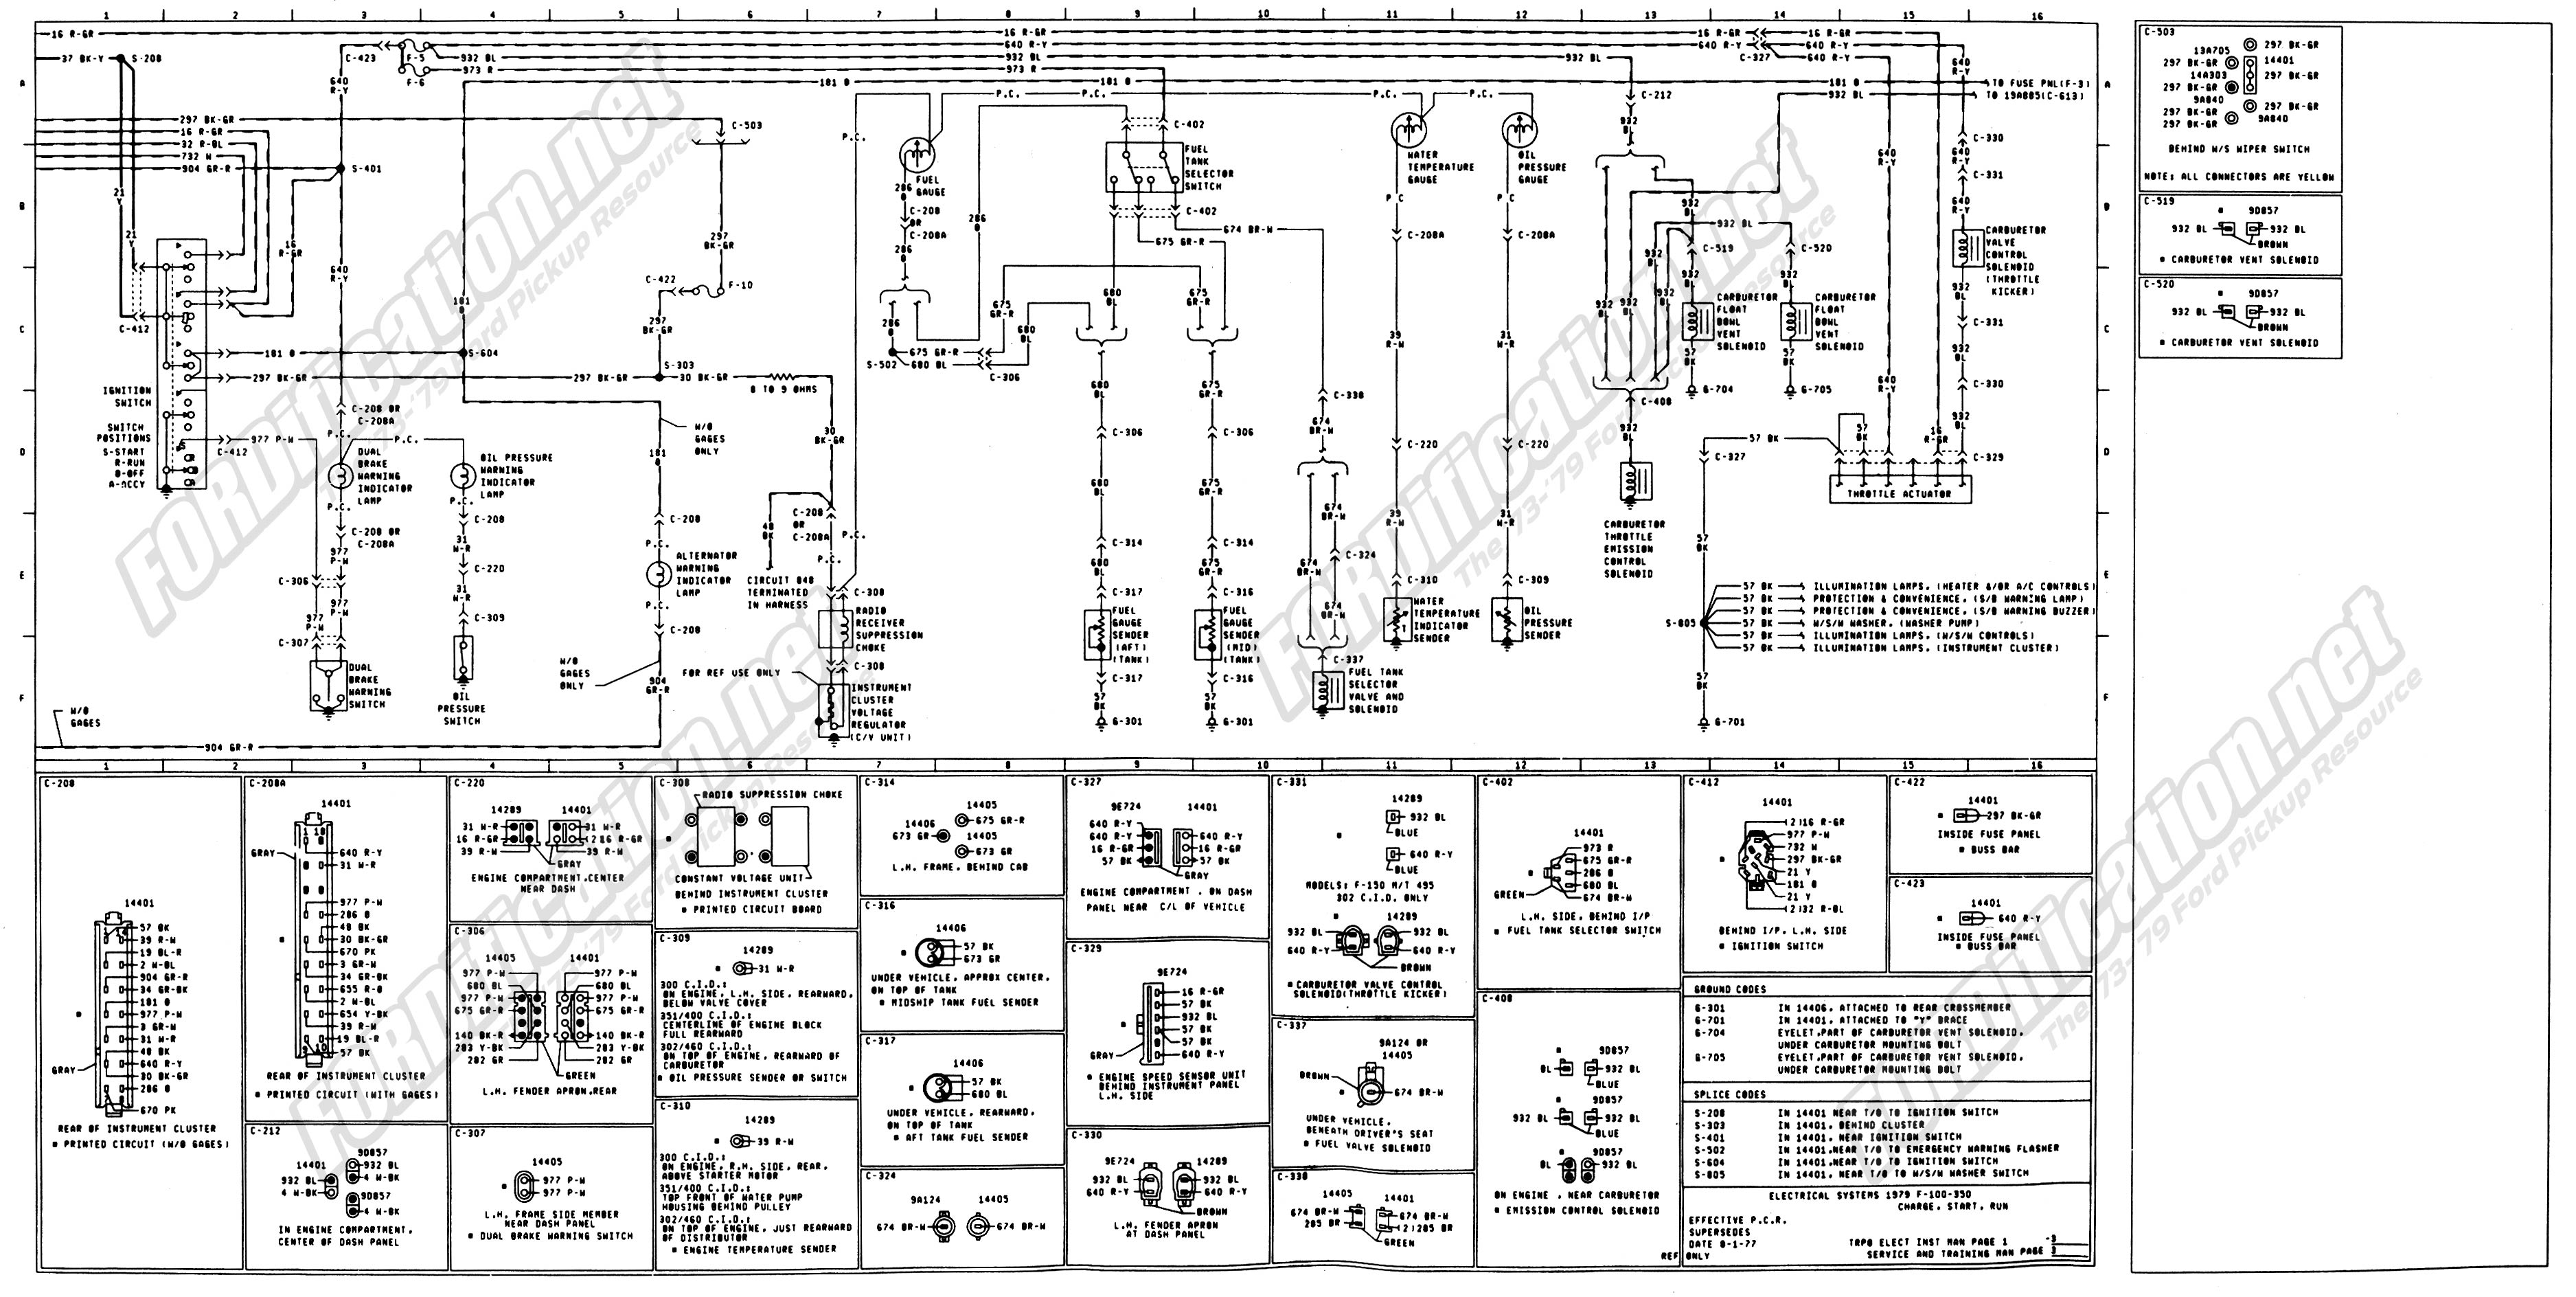 wiring_79master_3of9 1973 1979 ford truck wiring diagrams & schematics fordification net 2001 f350 wiring diagram at pacquiaovsvargaslive.co